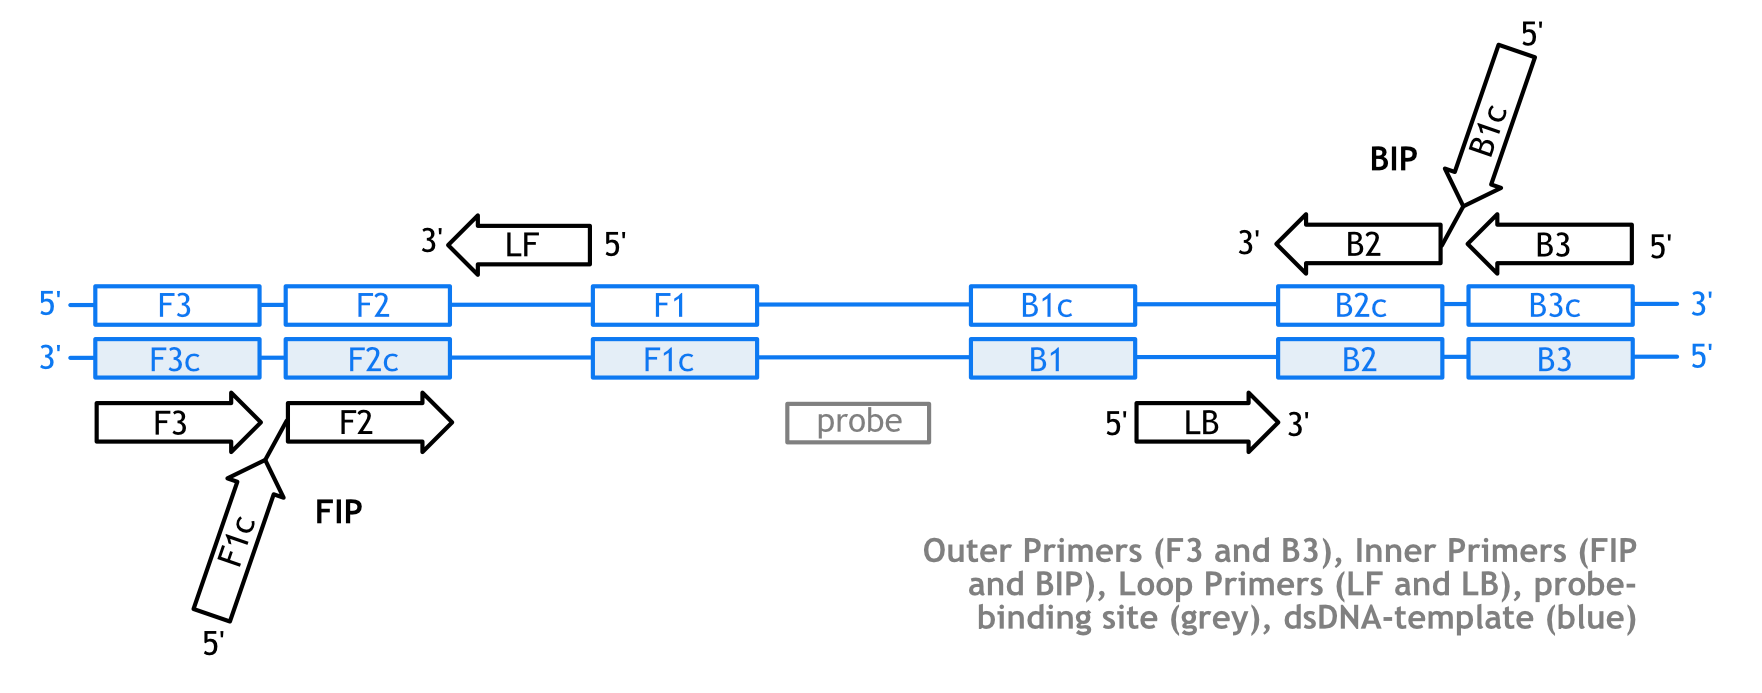 Figure 3. Standard Arrangement of Primers (and probe) for LAMP